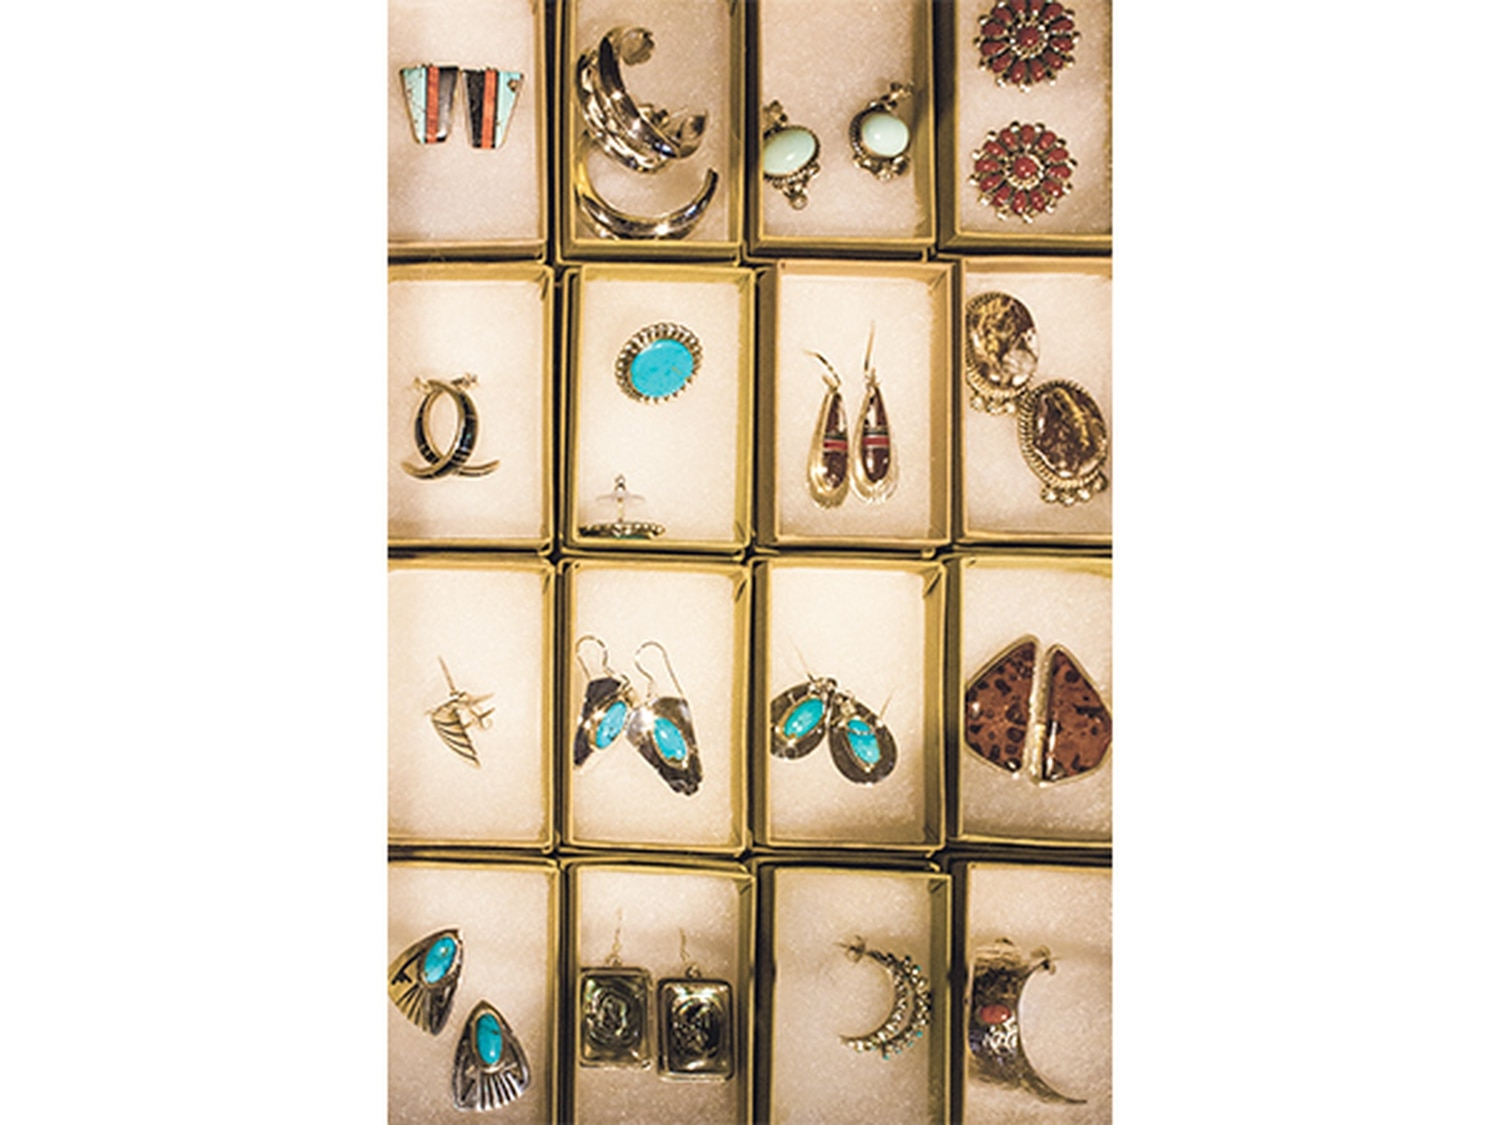 Showcased turquoise by Hopi, Navajo and Zuni tribes.